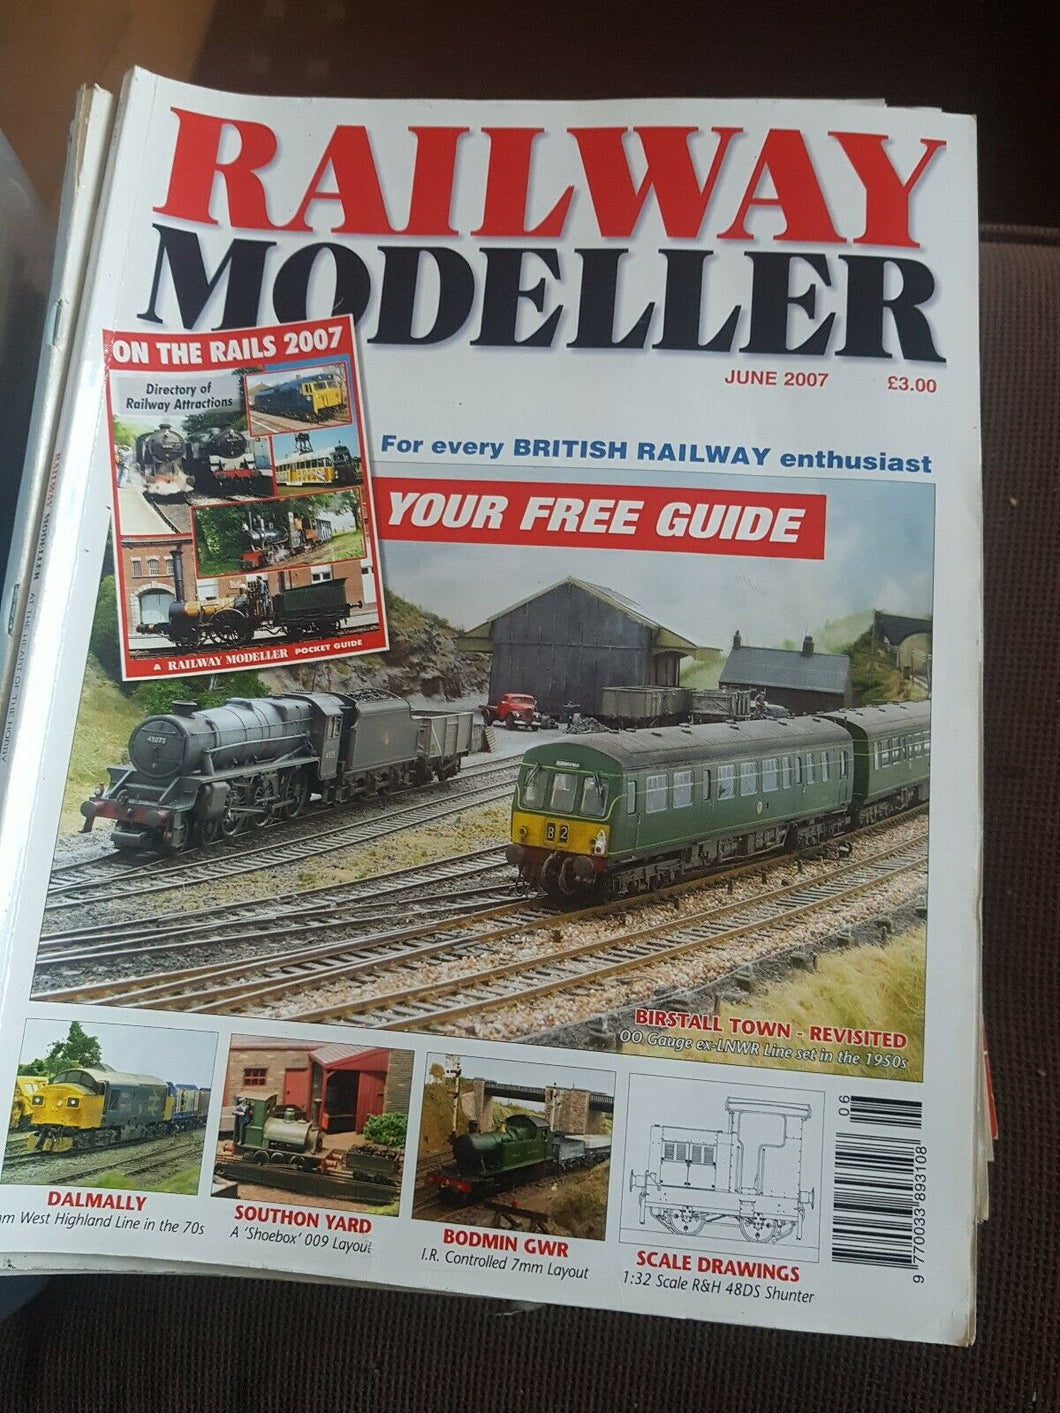 Railway modeller magazine June 2007